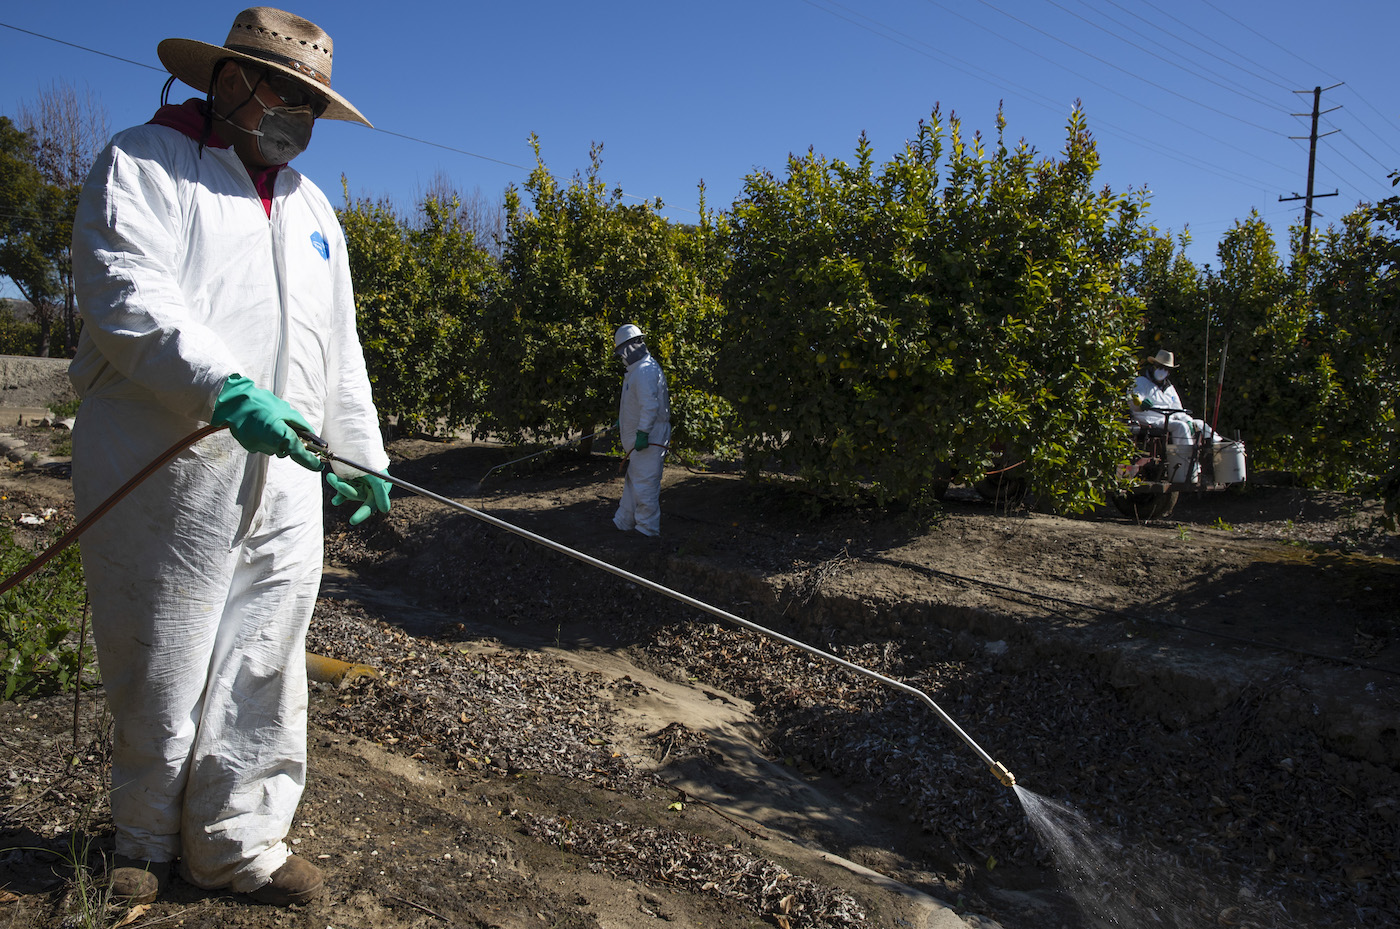 Farm workers spray against insects and weeds inside the orchards of a fruit farm in Mesa, California